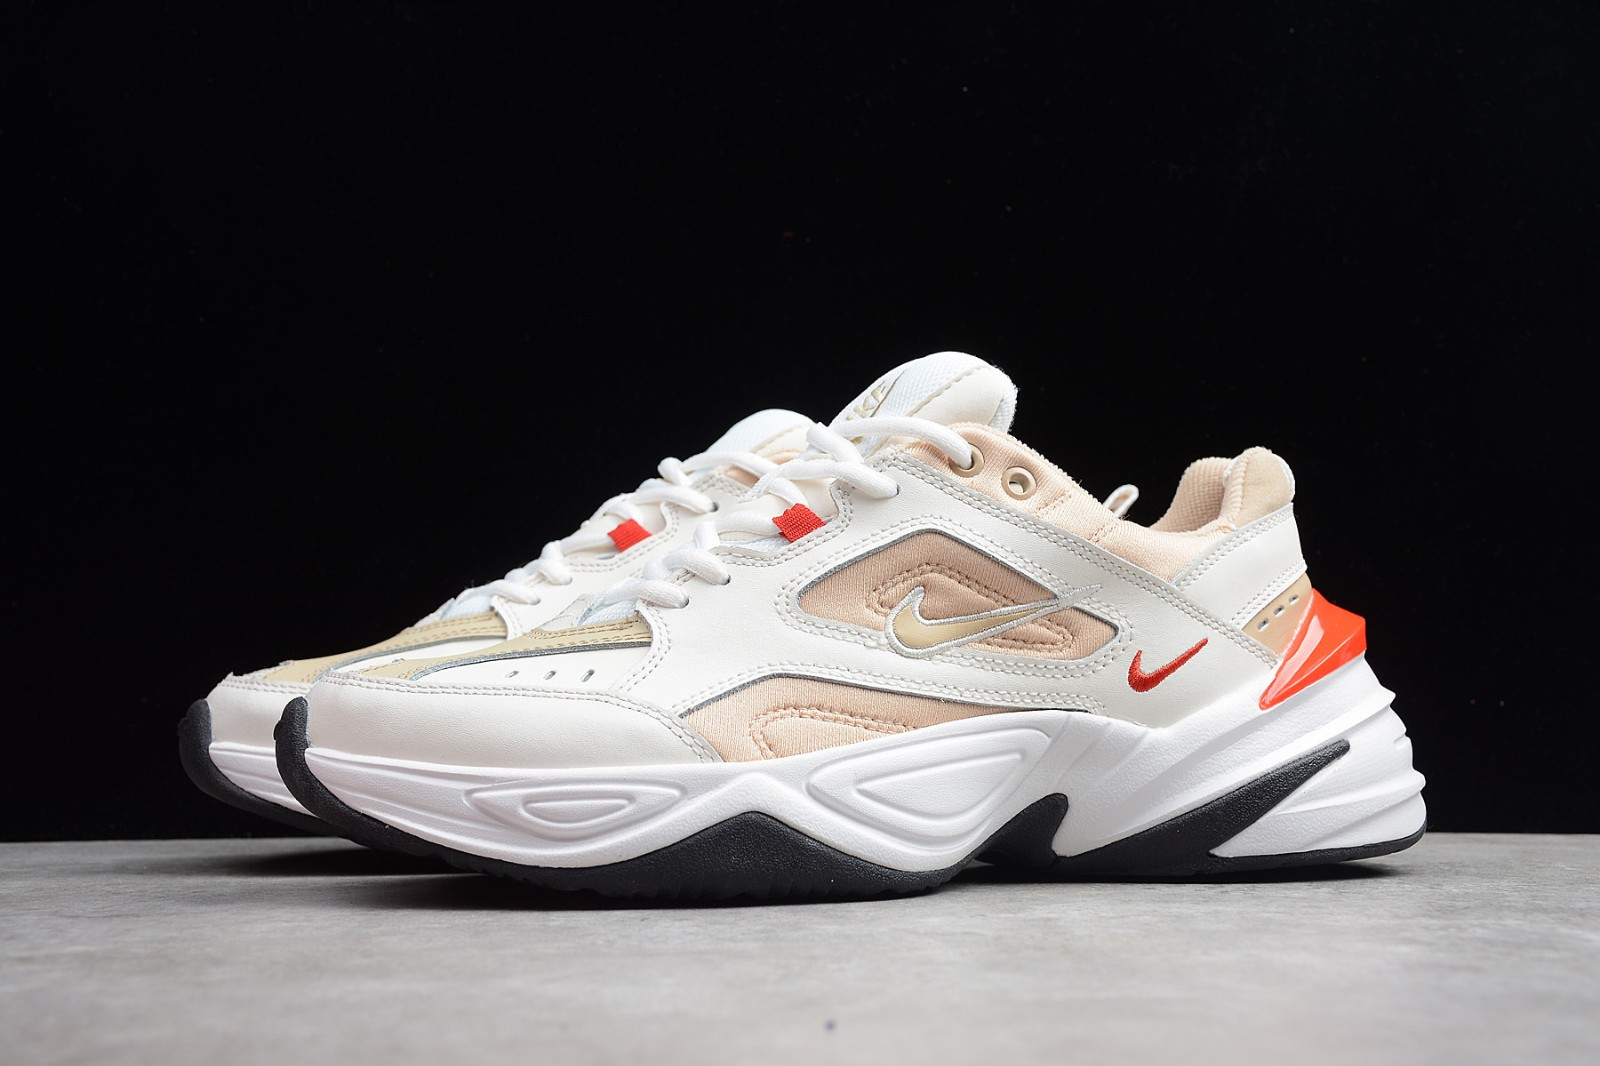 Nike chunky sneakers. </p>